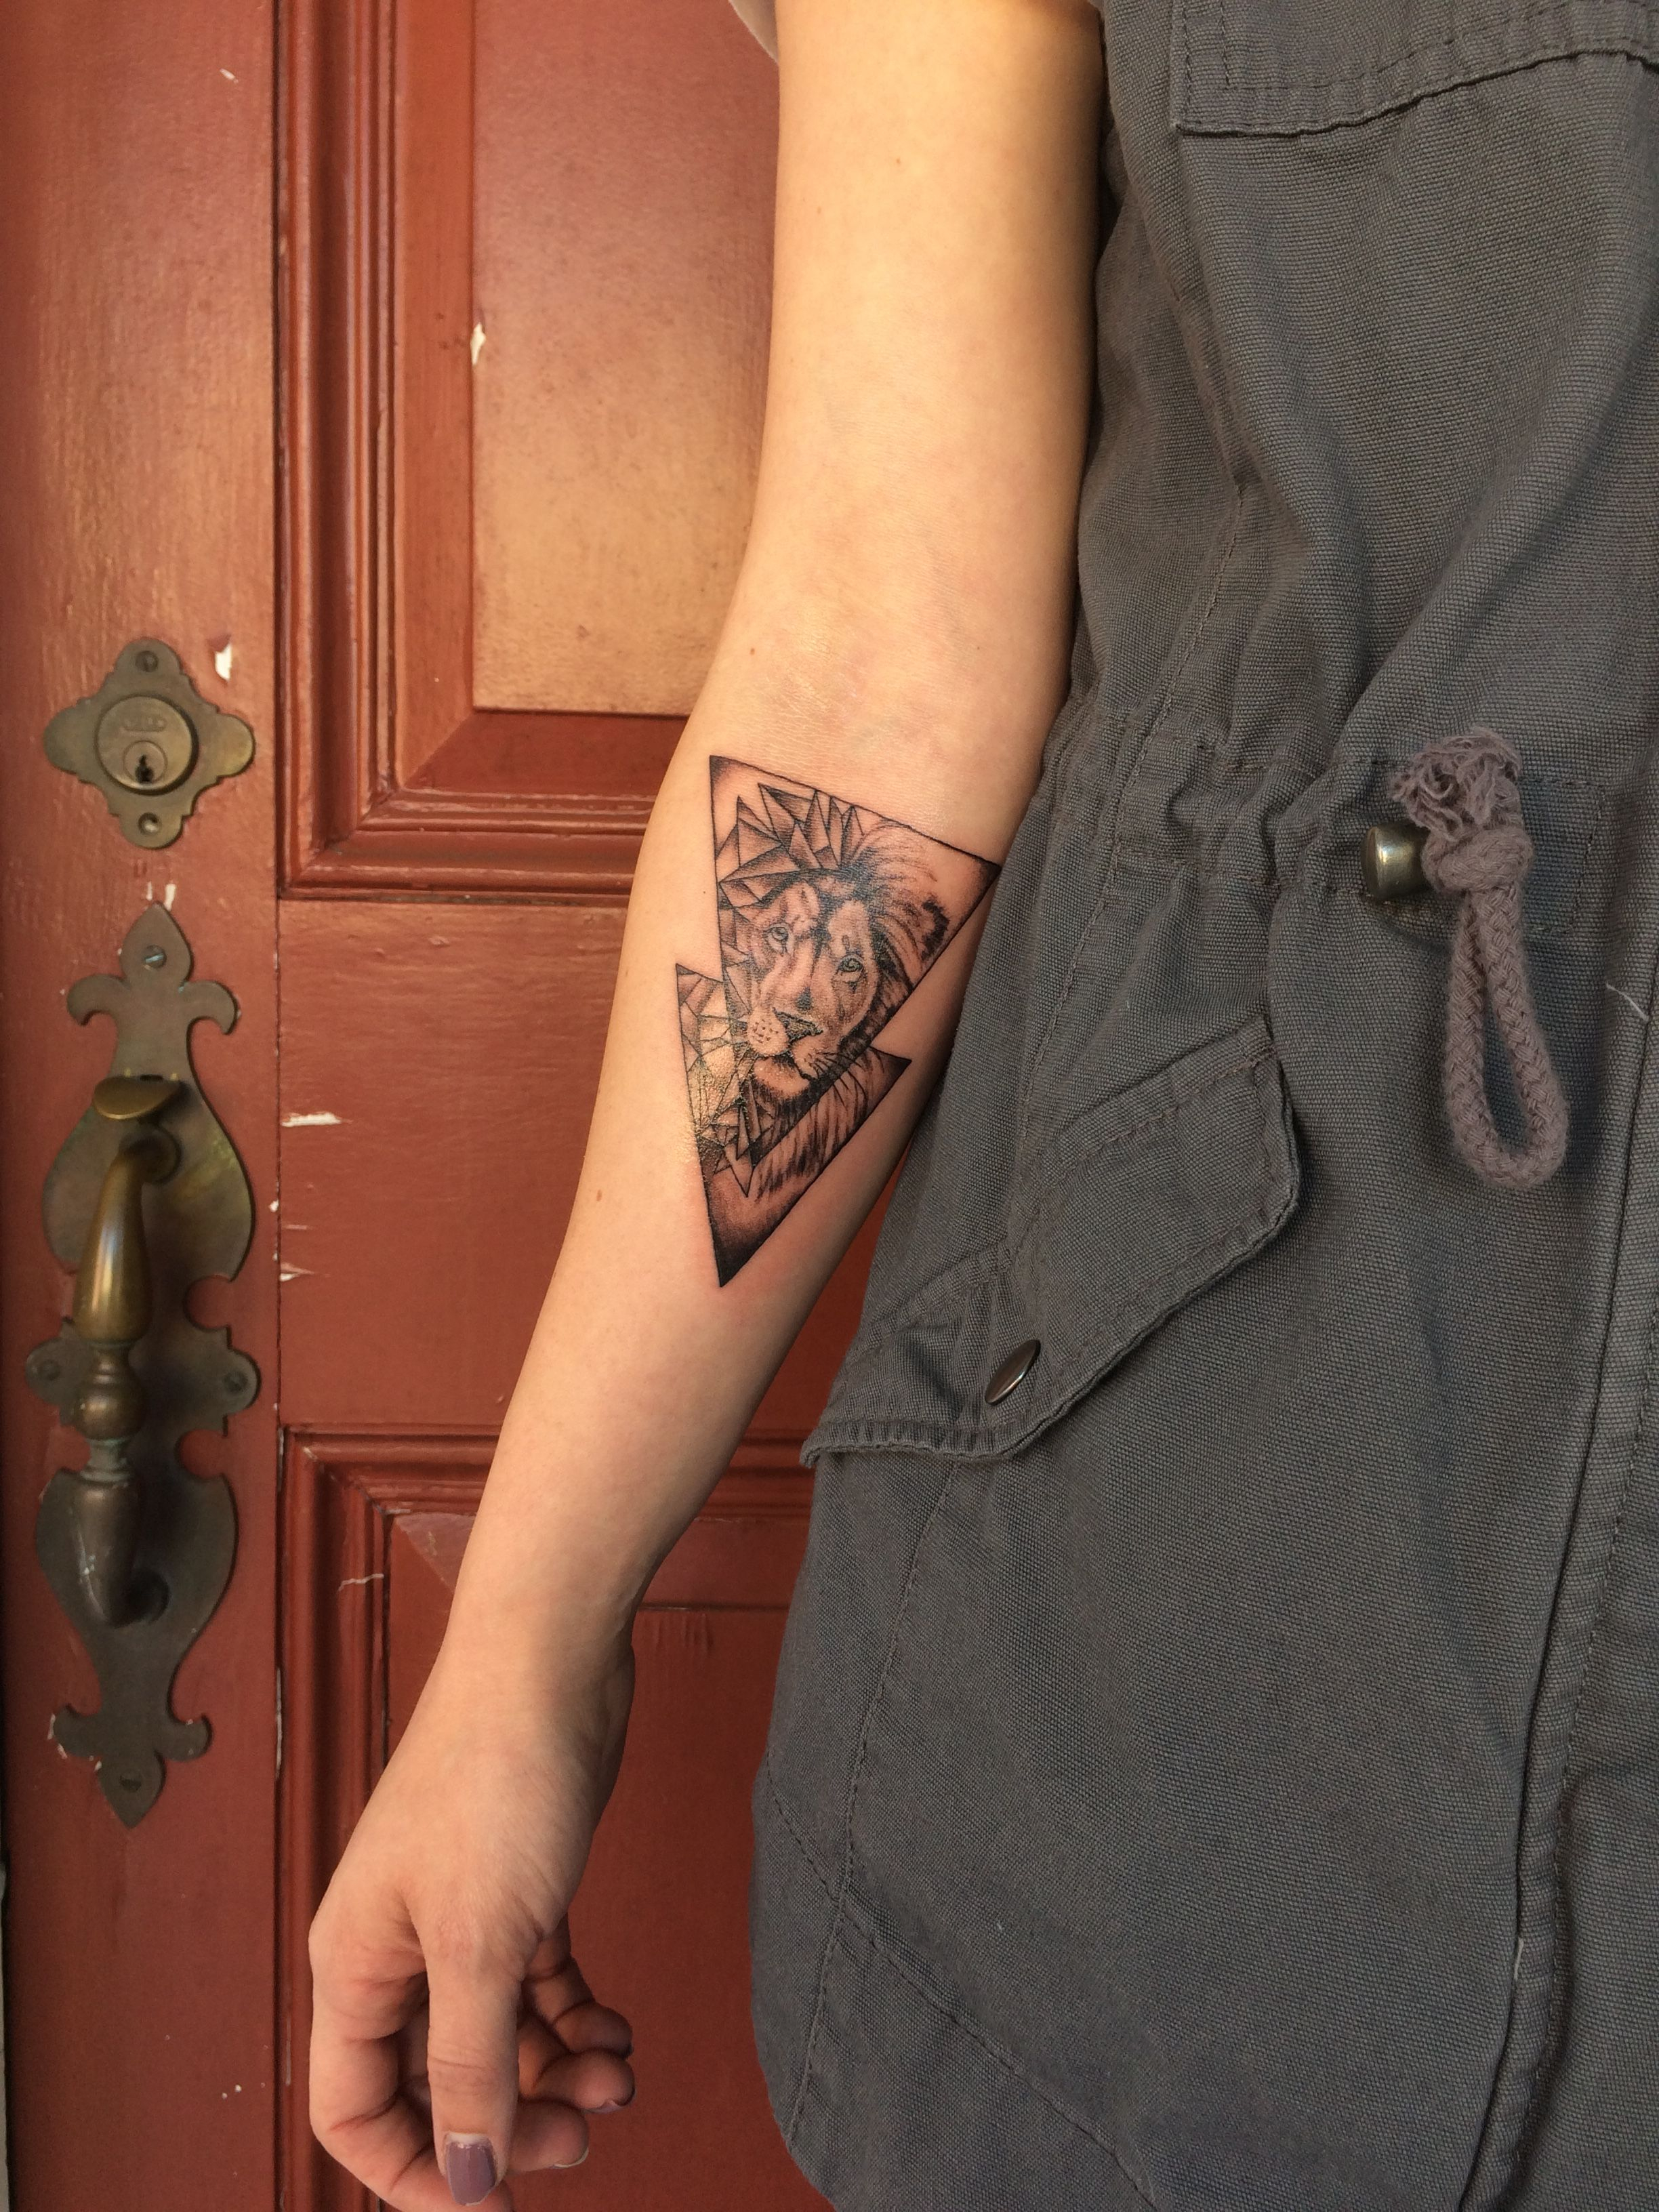 Lion Triangle Tattoo On Forearm Half Geometric And Half Realistic intended for dimensions 2448 X 3264